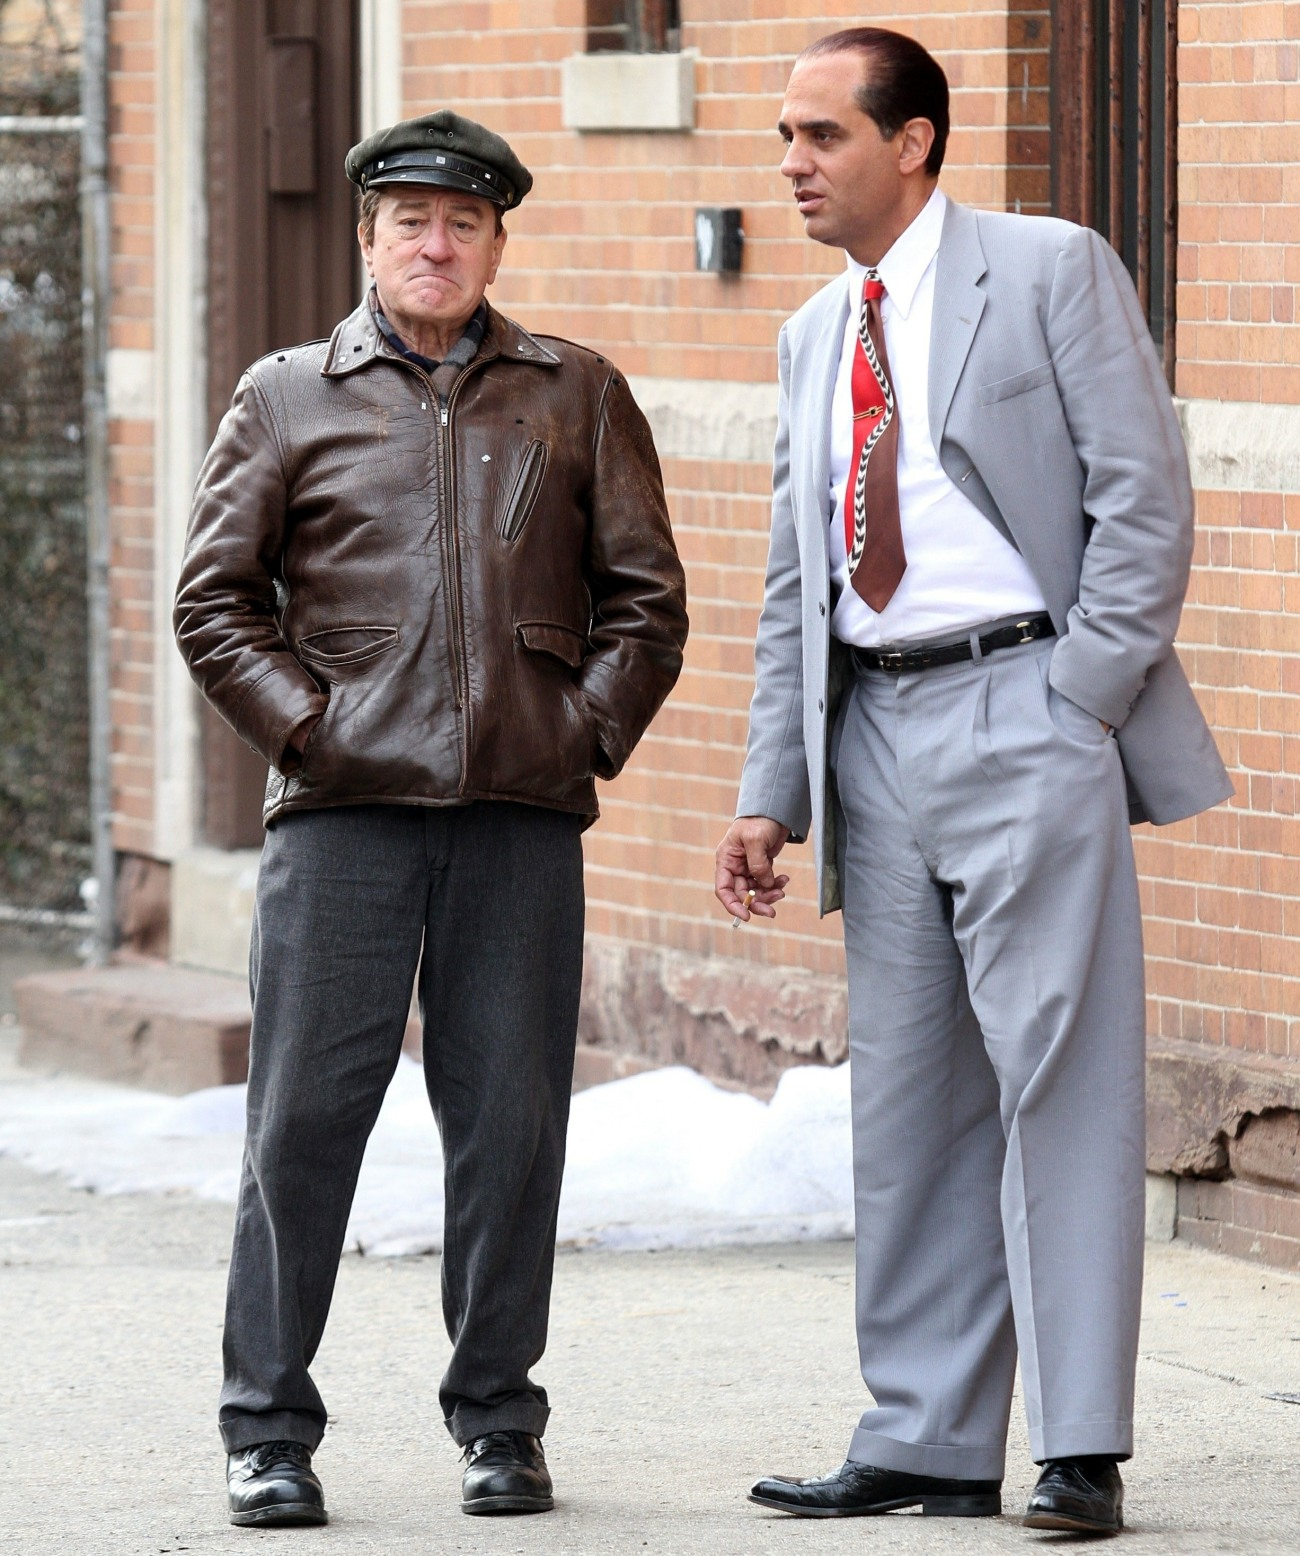 Robert De Niro, Martin Scorsese, and Bobby Cannavale might not be gangsters in real life, but they're bosses in their movie set!